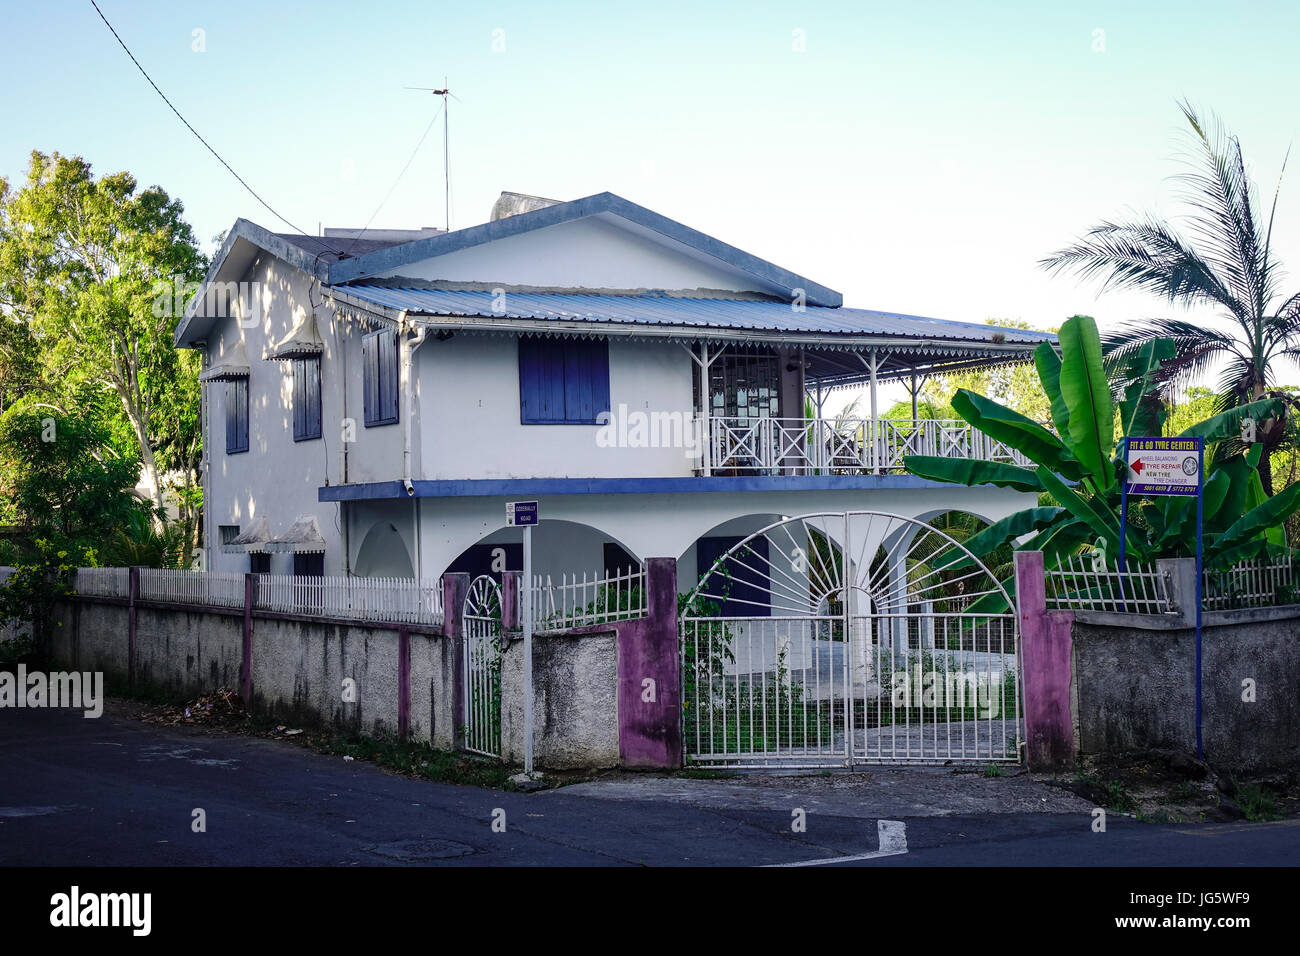 port louis, mauritius - jan 11, 2017. a traditional house at